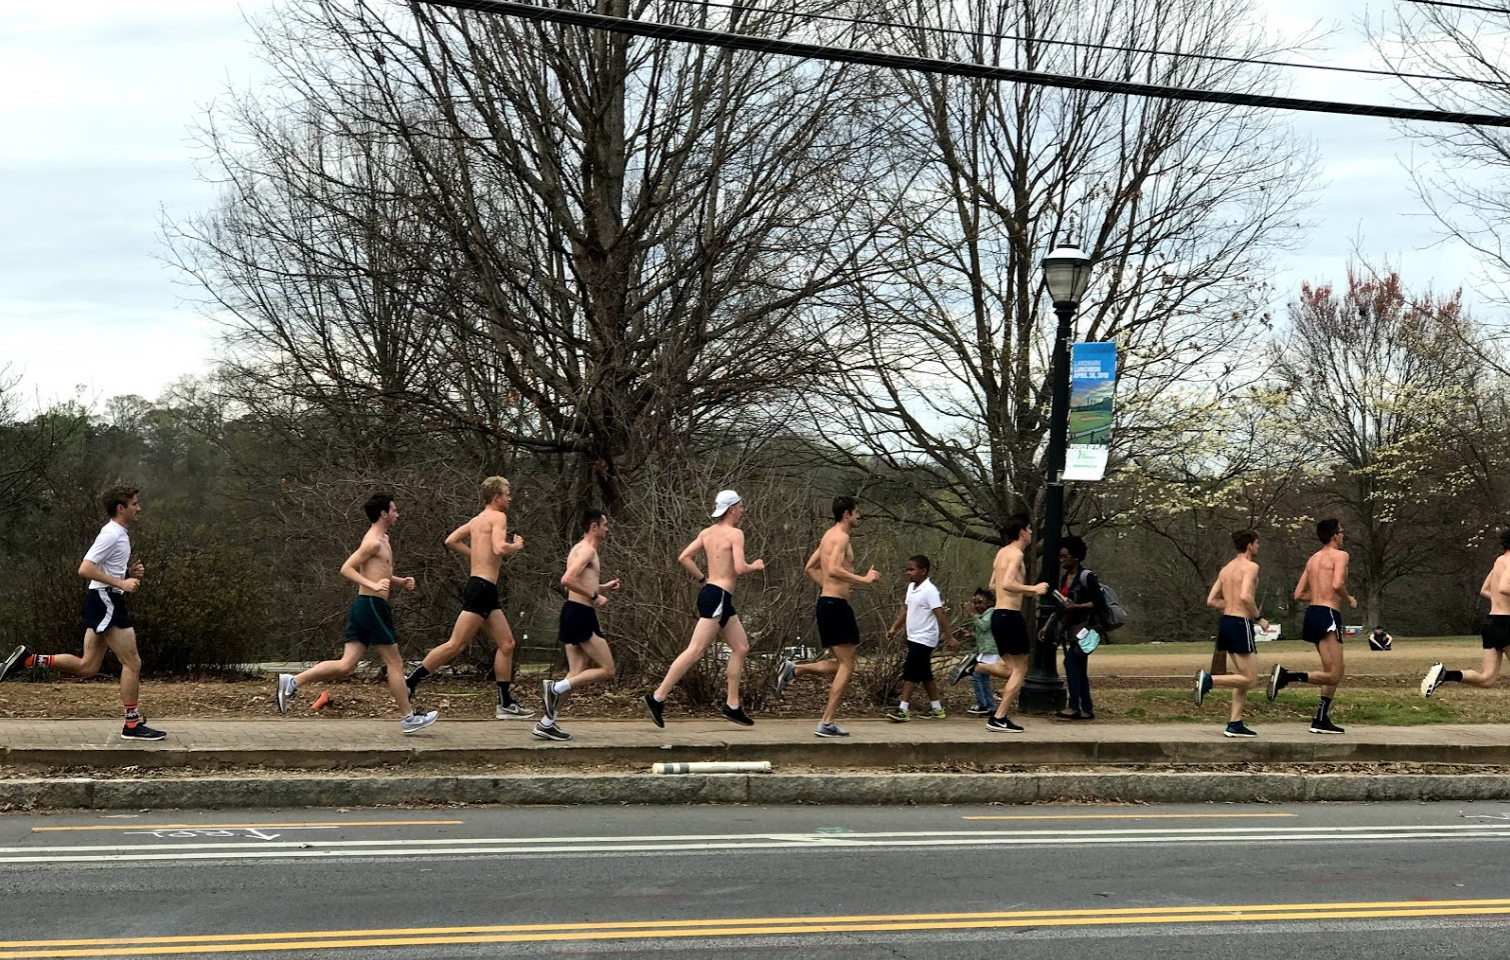 This was a scene one afternoon, on the sidewalk across from our Piedmont Airbnb at the edge of the park. It was a constant stream of joggers (not always topless) on weekends.